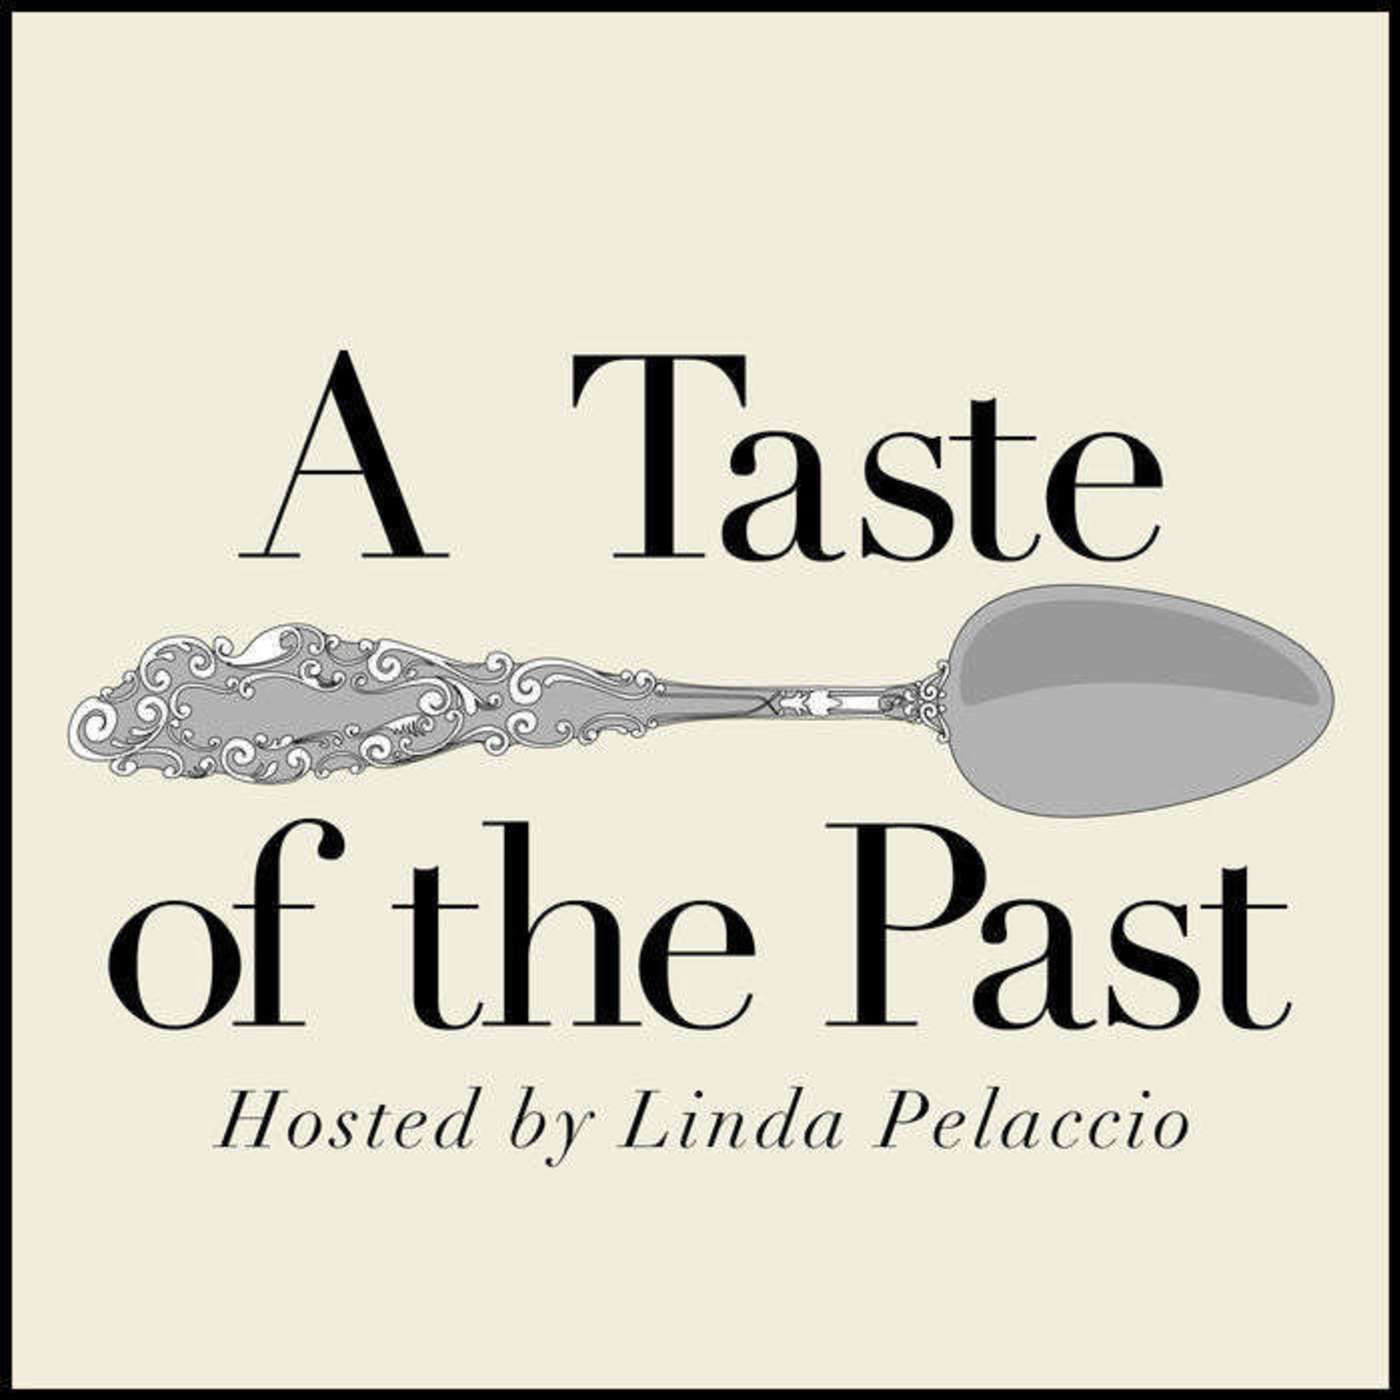 Episode 168: The History of Knives with Peter Hertzmann